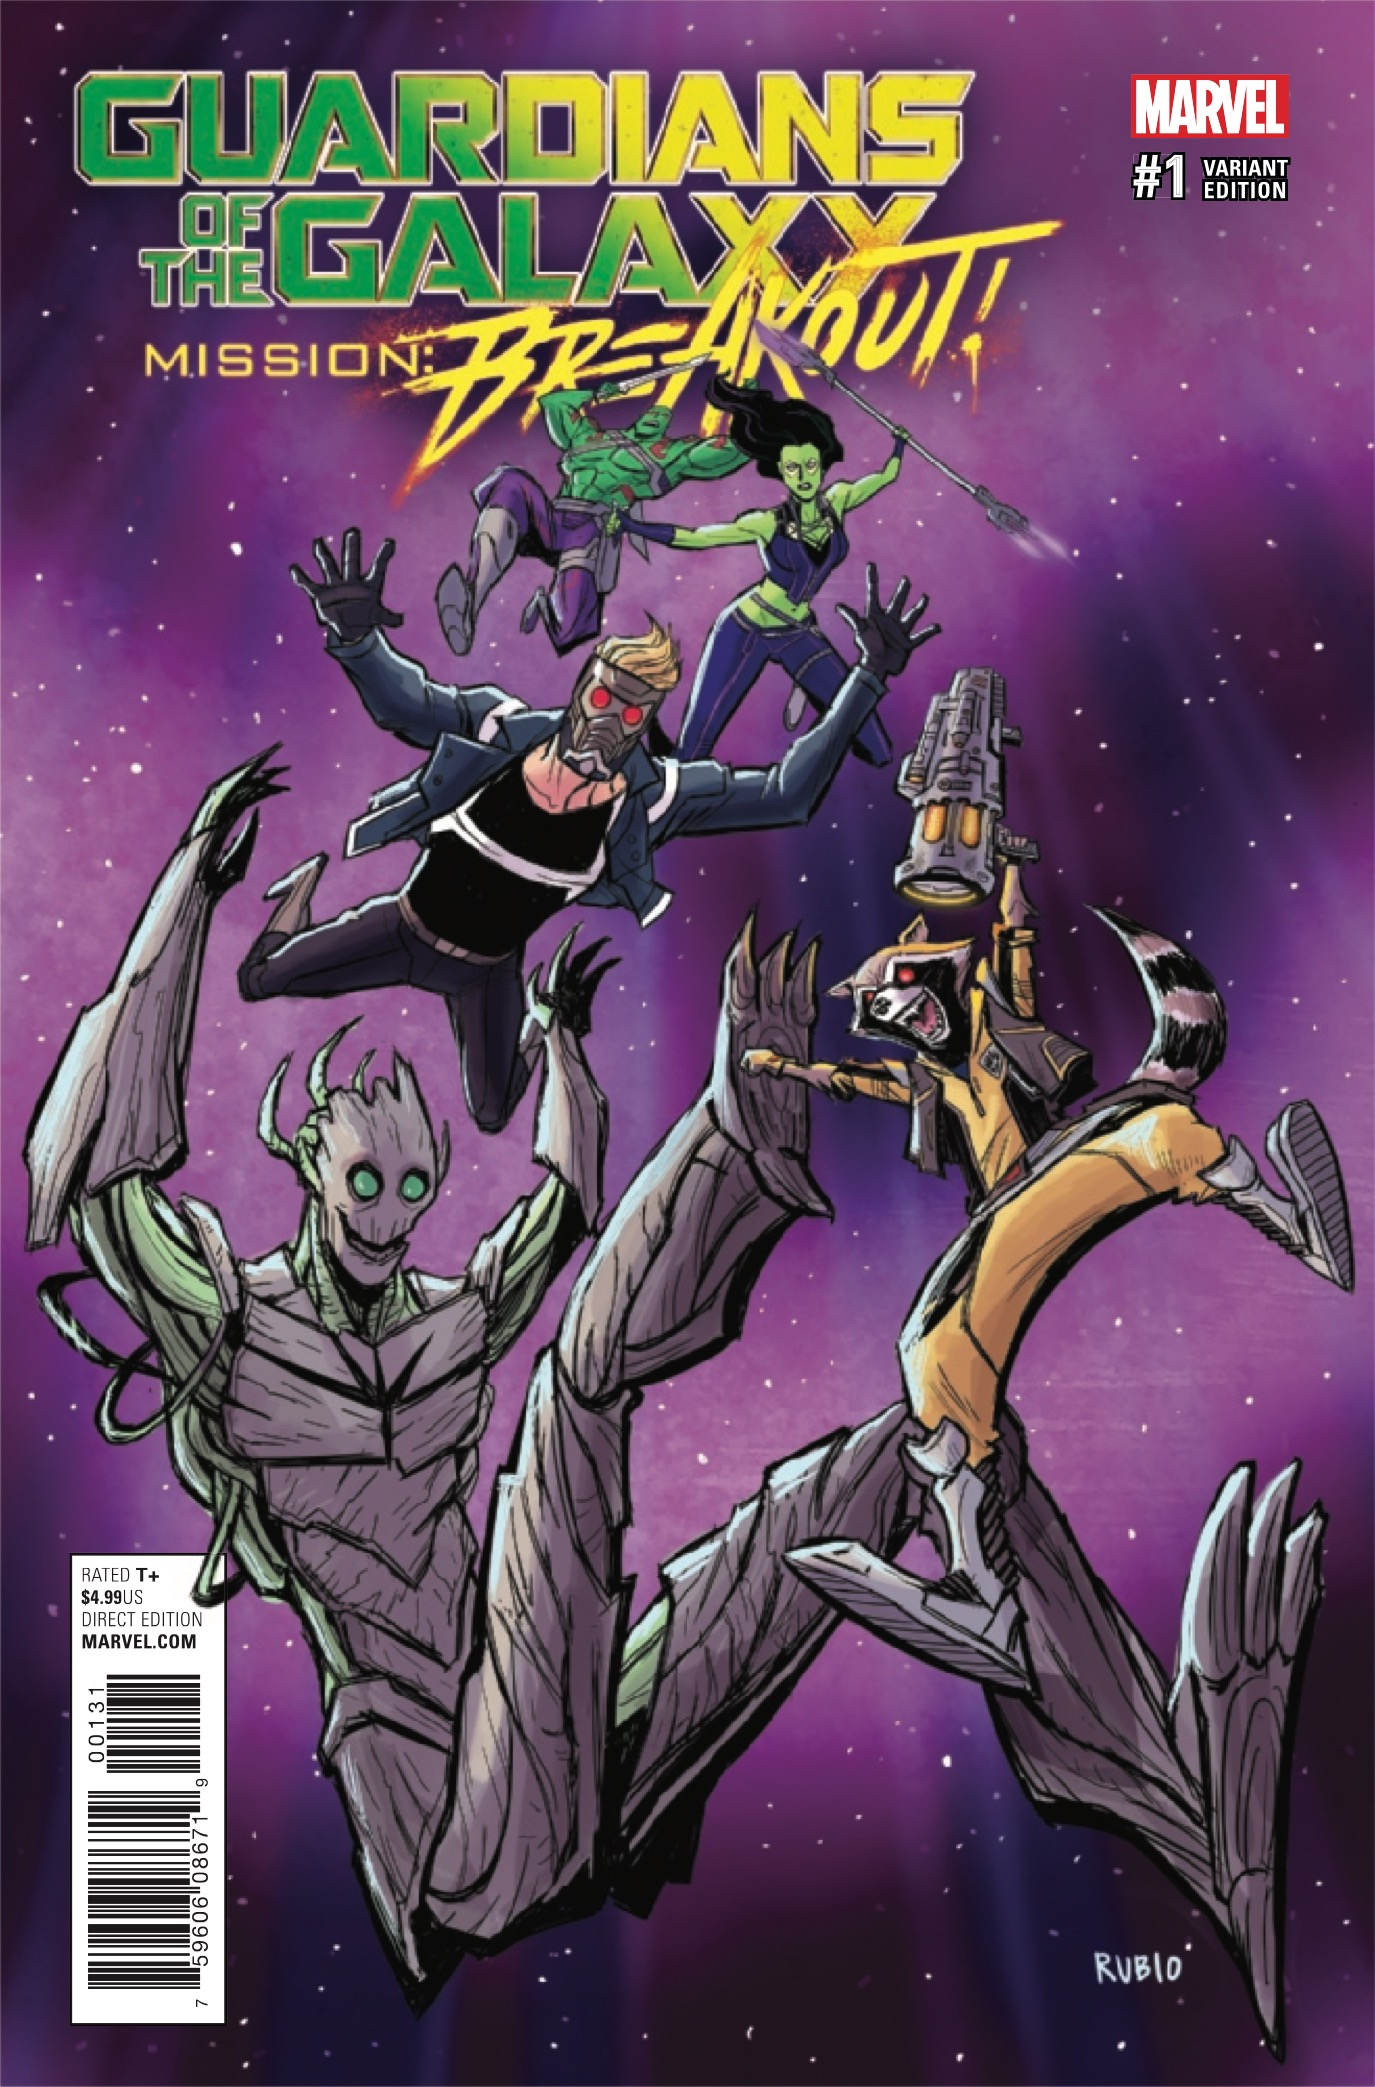 Guardians of the Galaxy: Mission Breakout #1 Review